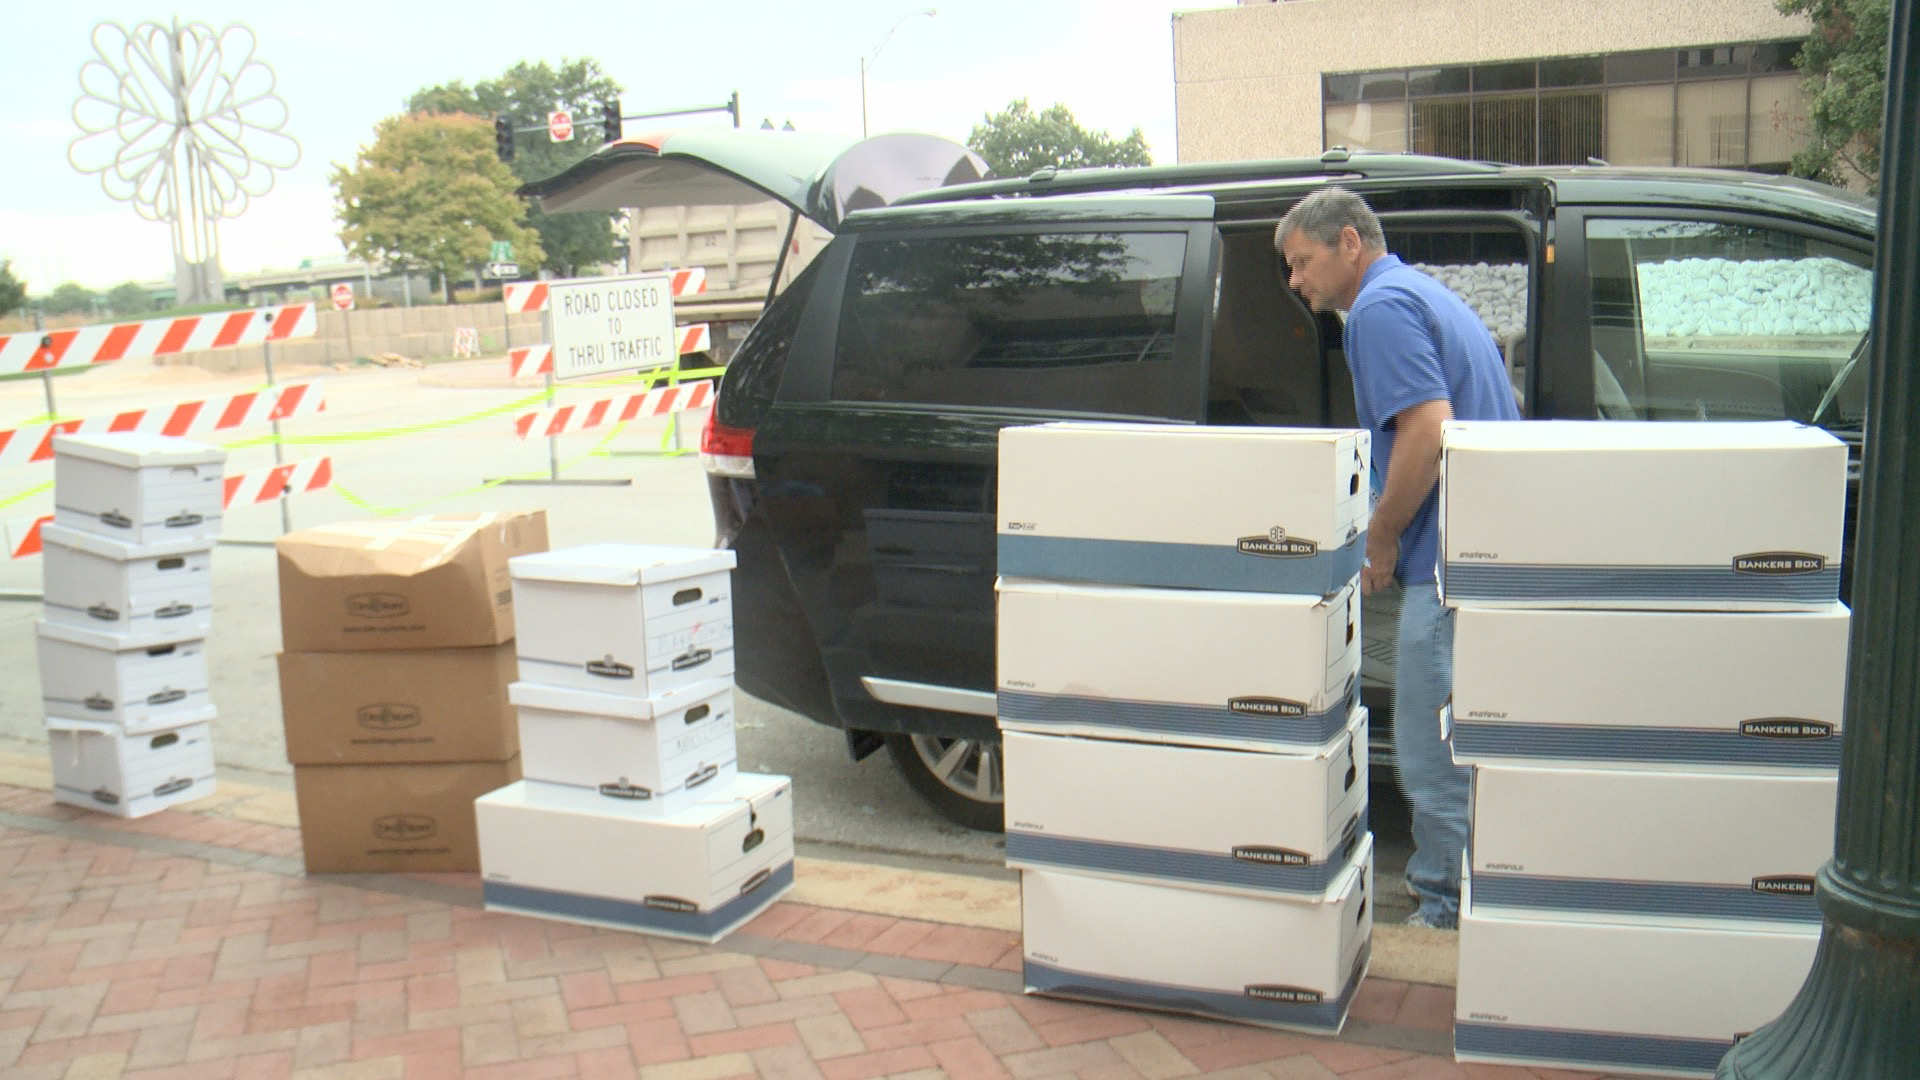 A Cedar Rapids consulting firm is moving records back into their office after the Cedar River flood threat diminished. (Roger Riley WHO-HD)